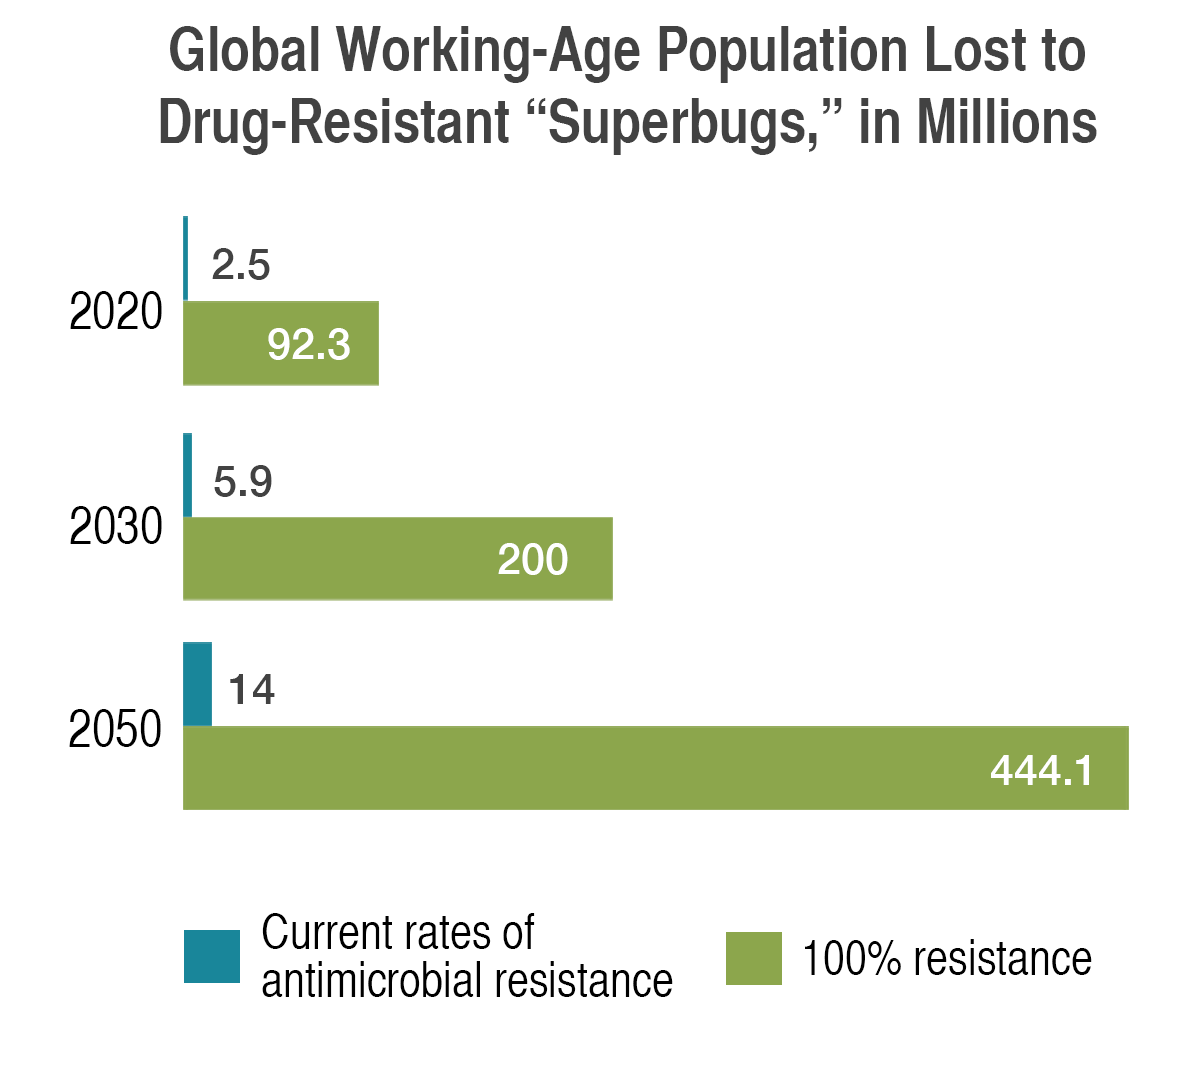 Global Working-Age Population Lost to Drug-Resistant 'Superbugs'